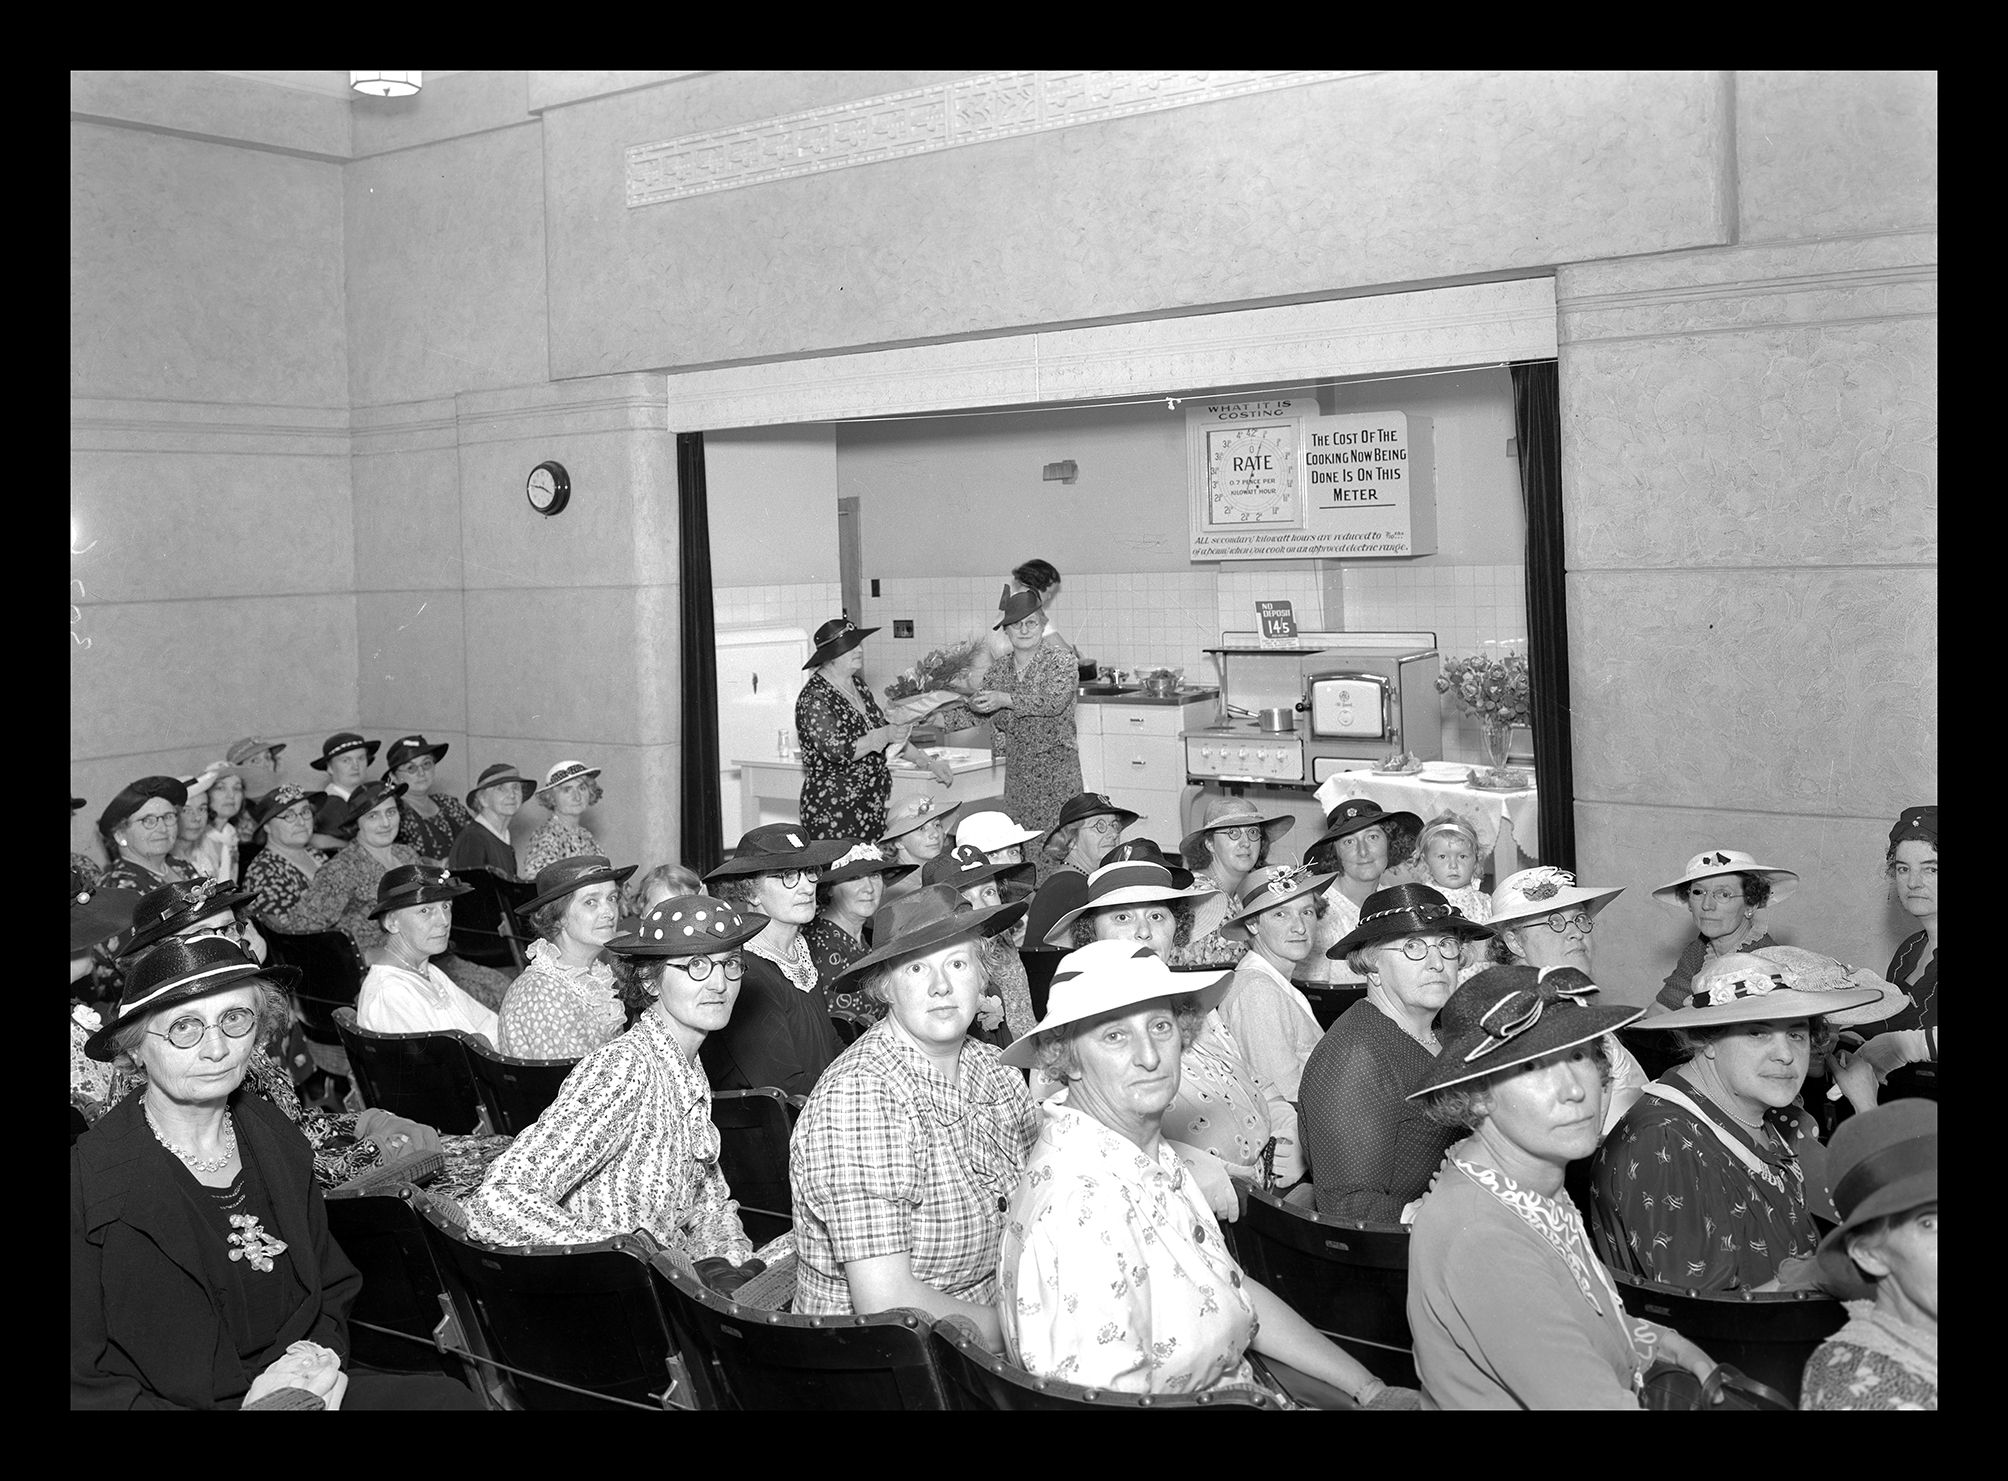 1930's photo of a room full of women wearing hats